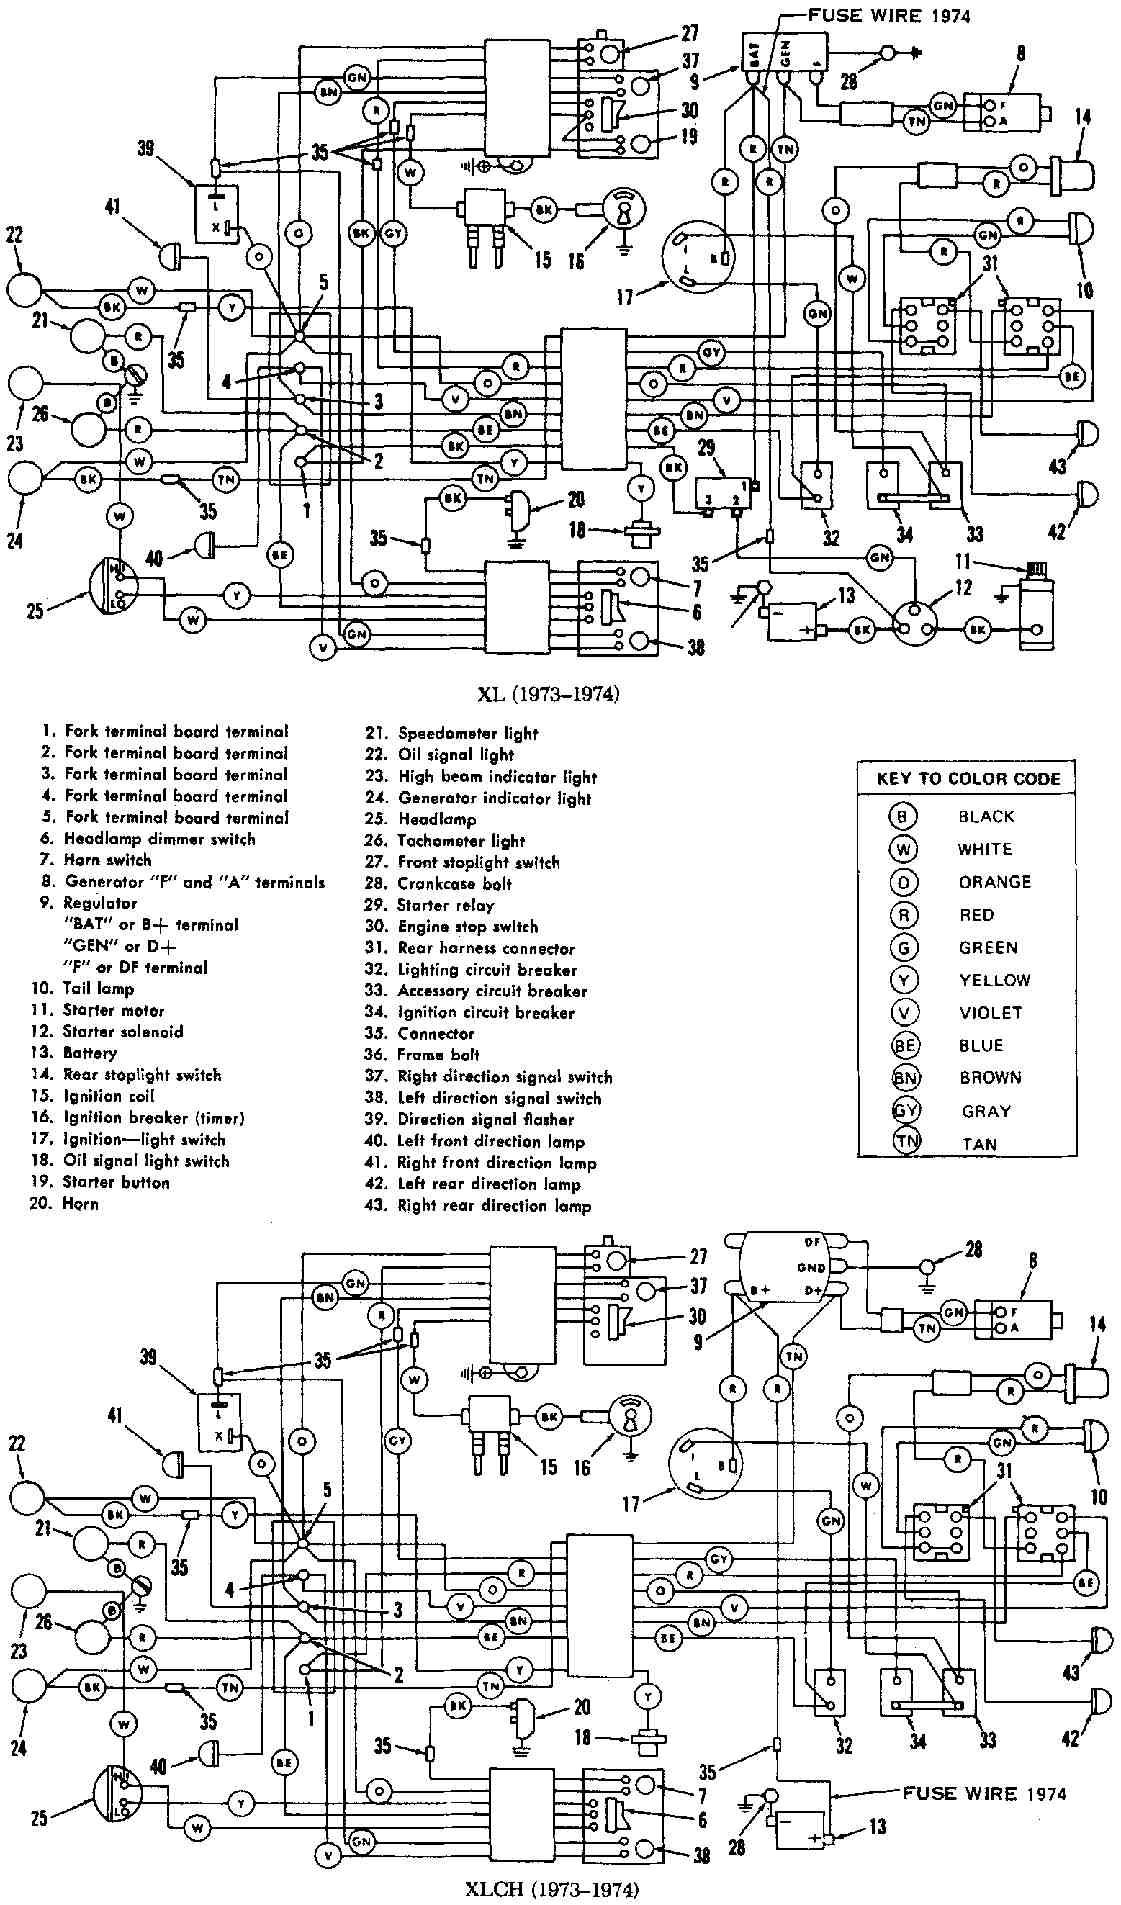 Harley Davidson - Motorcycles Manual PDF, Wiring Diagram ... on 2000 international wiring diagram, 2000 vw wiring diagram, 2000 freightliner wiring diagram, 2000 gmc wiring diagram, 2000 saturn wiring diagram, 2000 volvo wiring diagram, 2000 bmw wiring diagram, 2000 polaris wiring diagram, 2000 chevrolet wiring diagram, 2000 sportster 883 wiring diagram, 2000 club car wiring diagram, 2000 land rover wiring diagram,